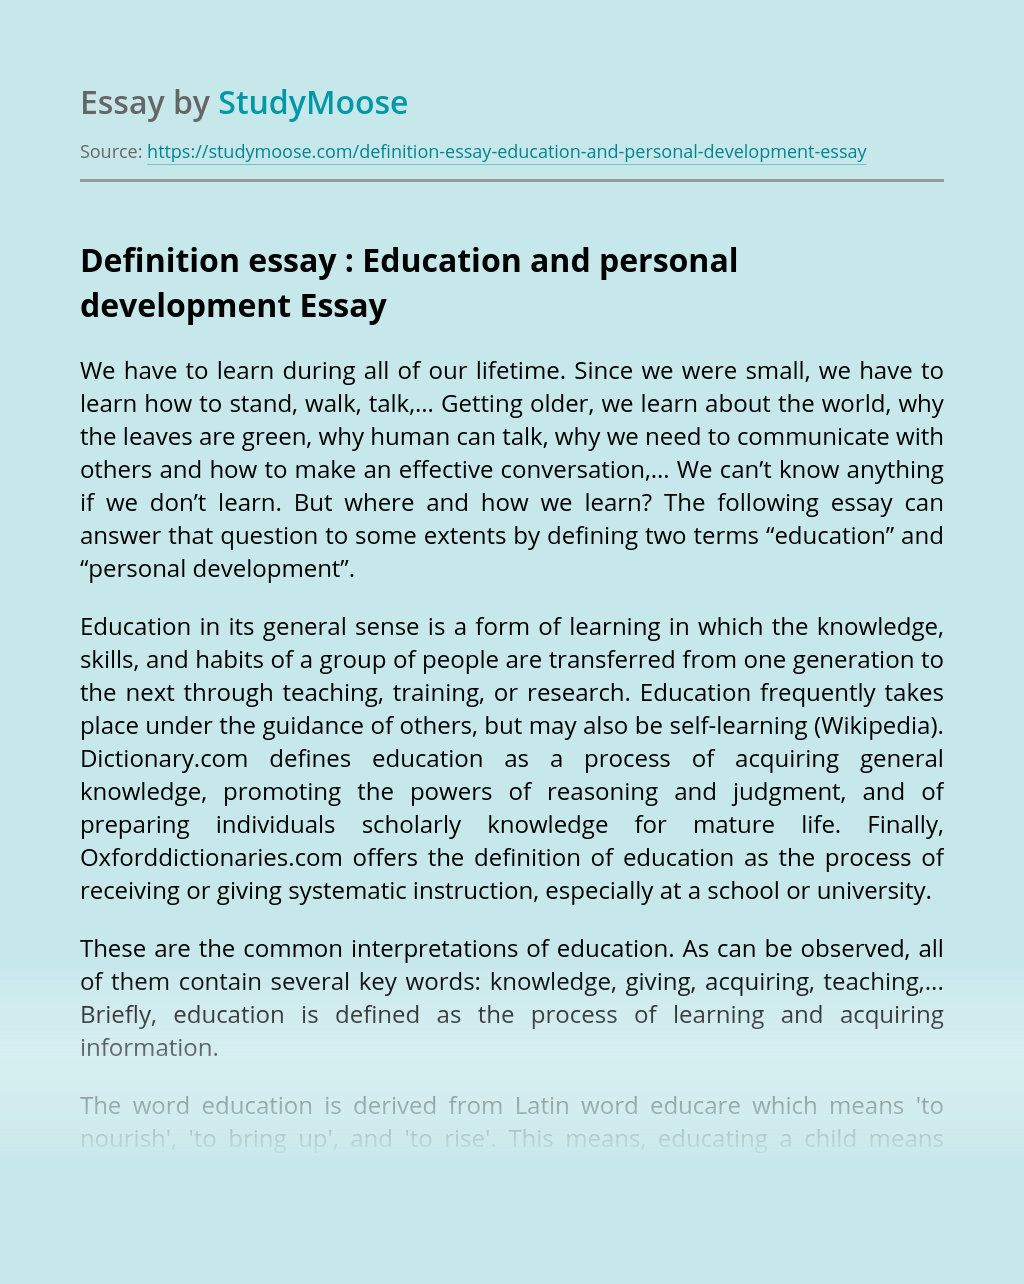 Definition essay : Education and personal development